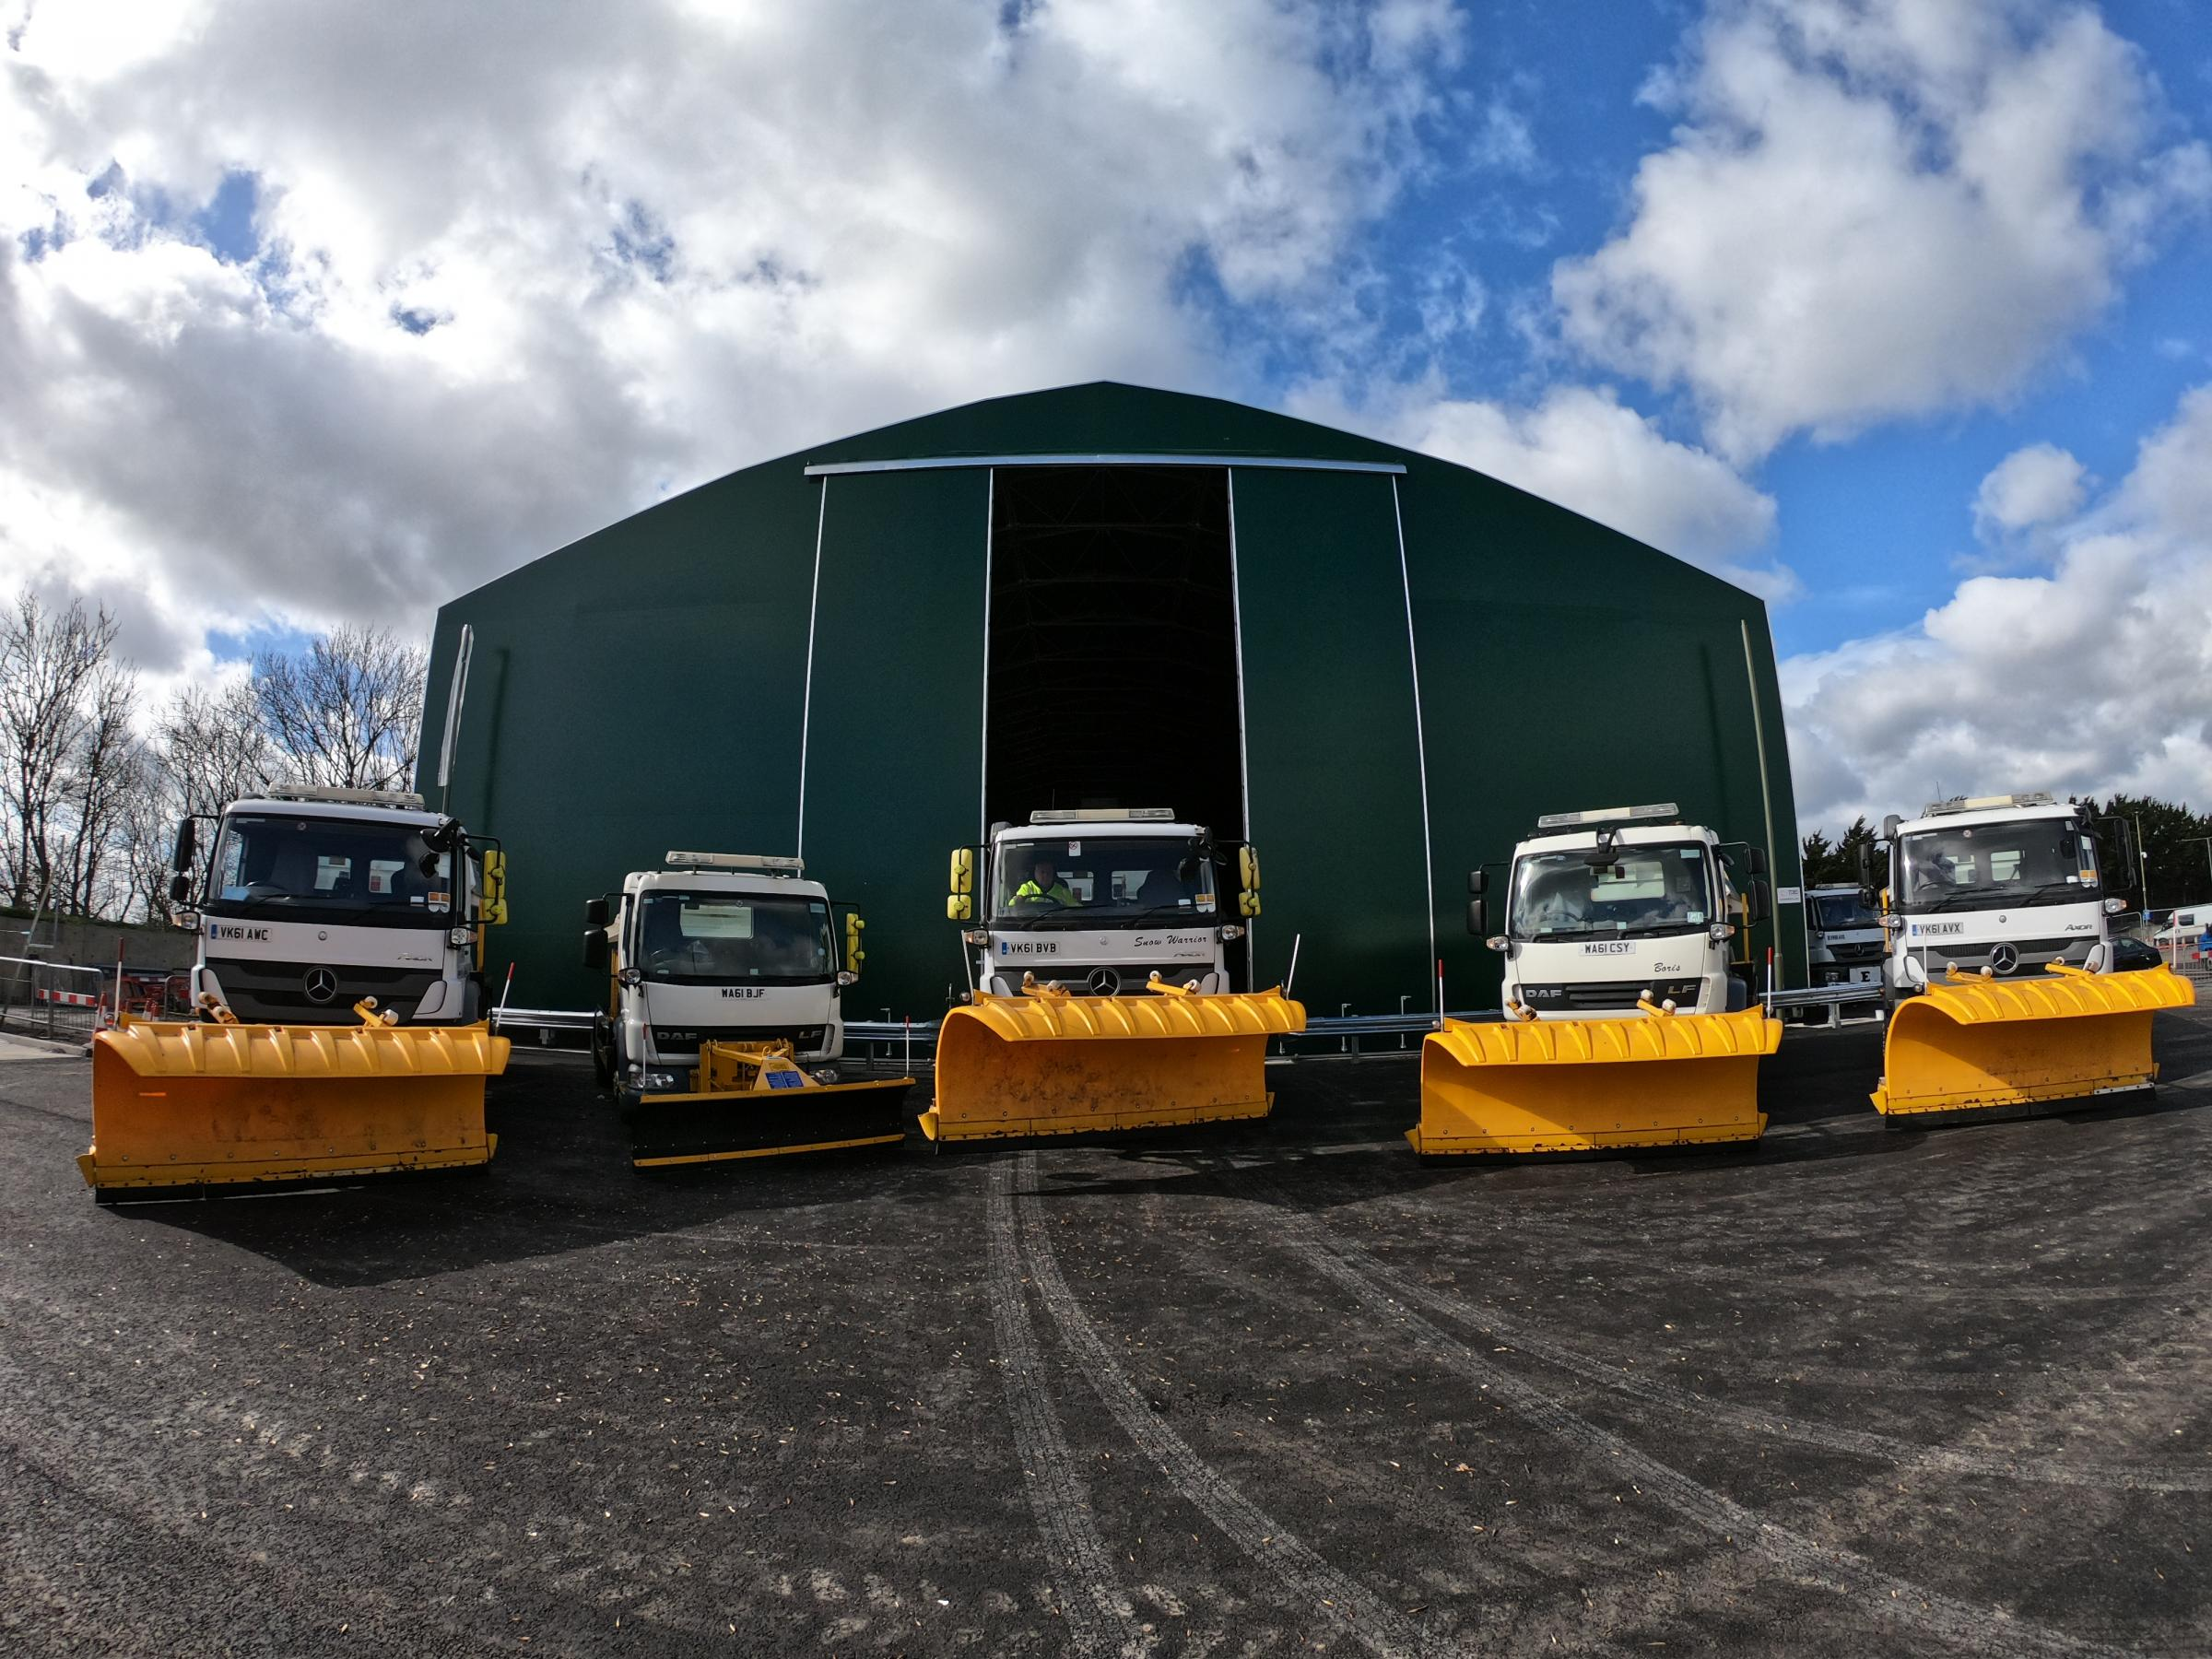 The new gritting barn in Drayton. Pic: Oxfordshire County Council